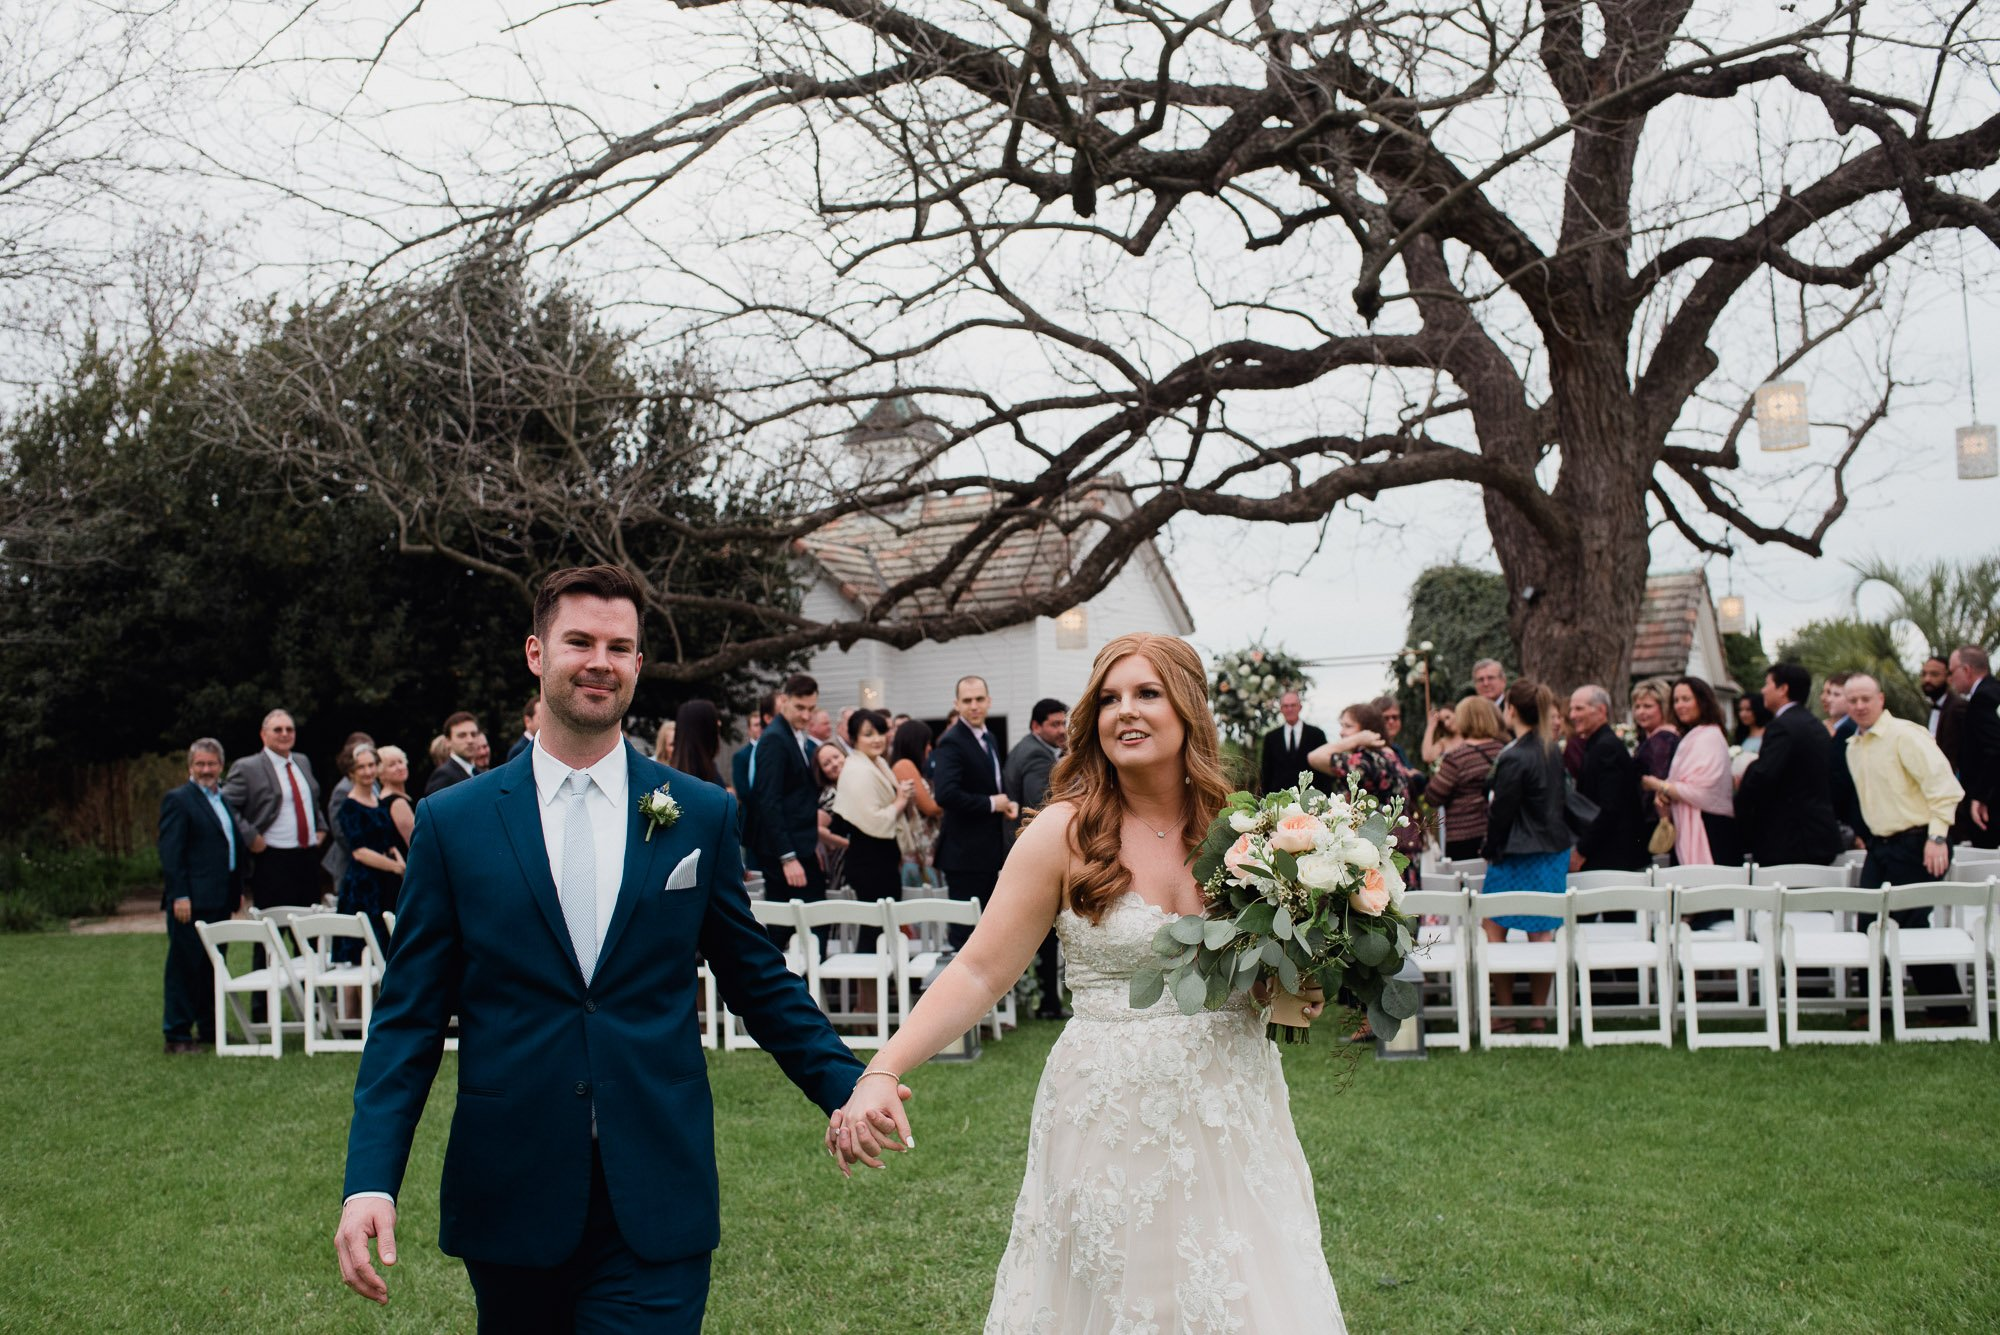 bride and groom leave their wedding ceremony at the barr mansion in austin hand in hand